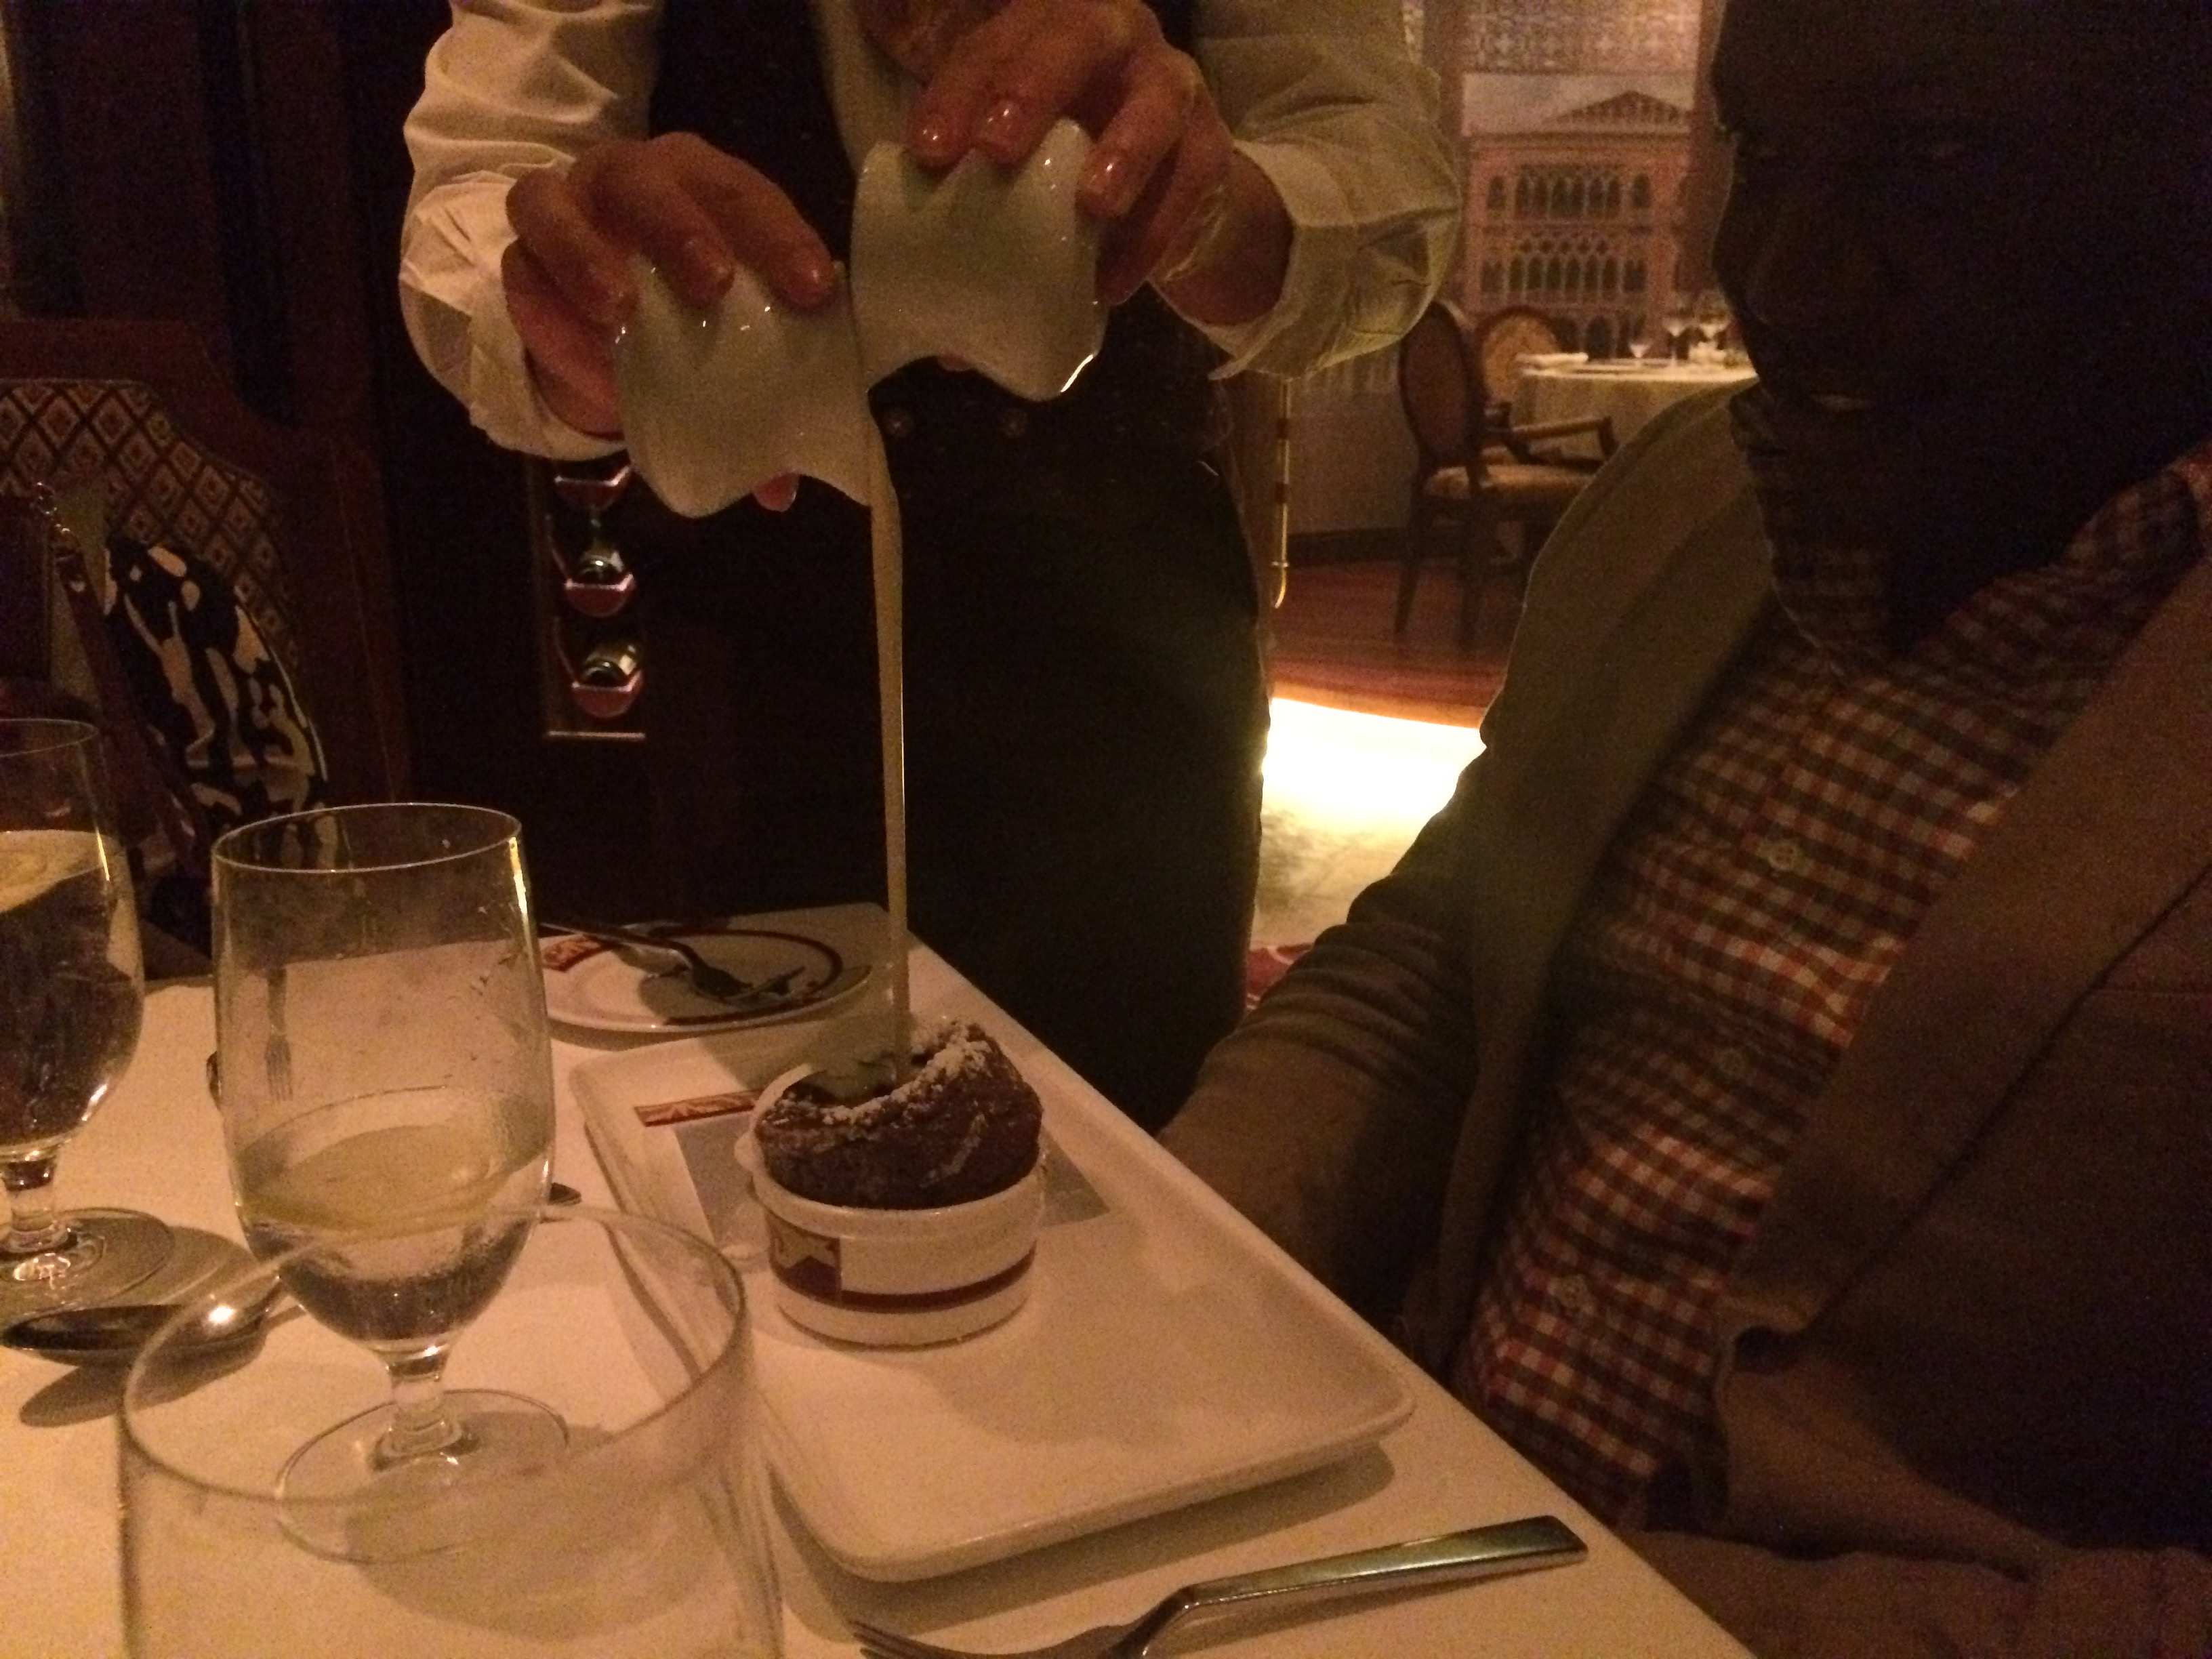 Special table side prep of the chocolate souffle just served the heighten the anticipation even more!